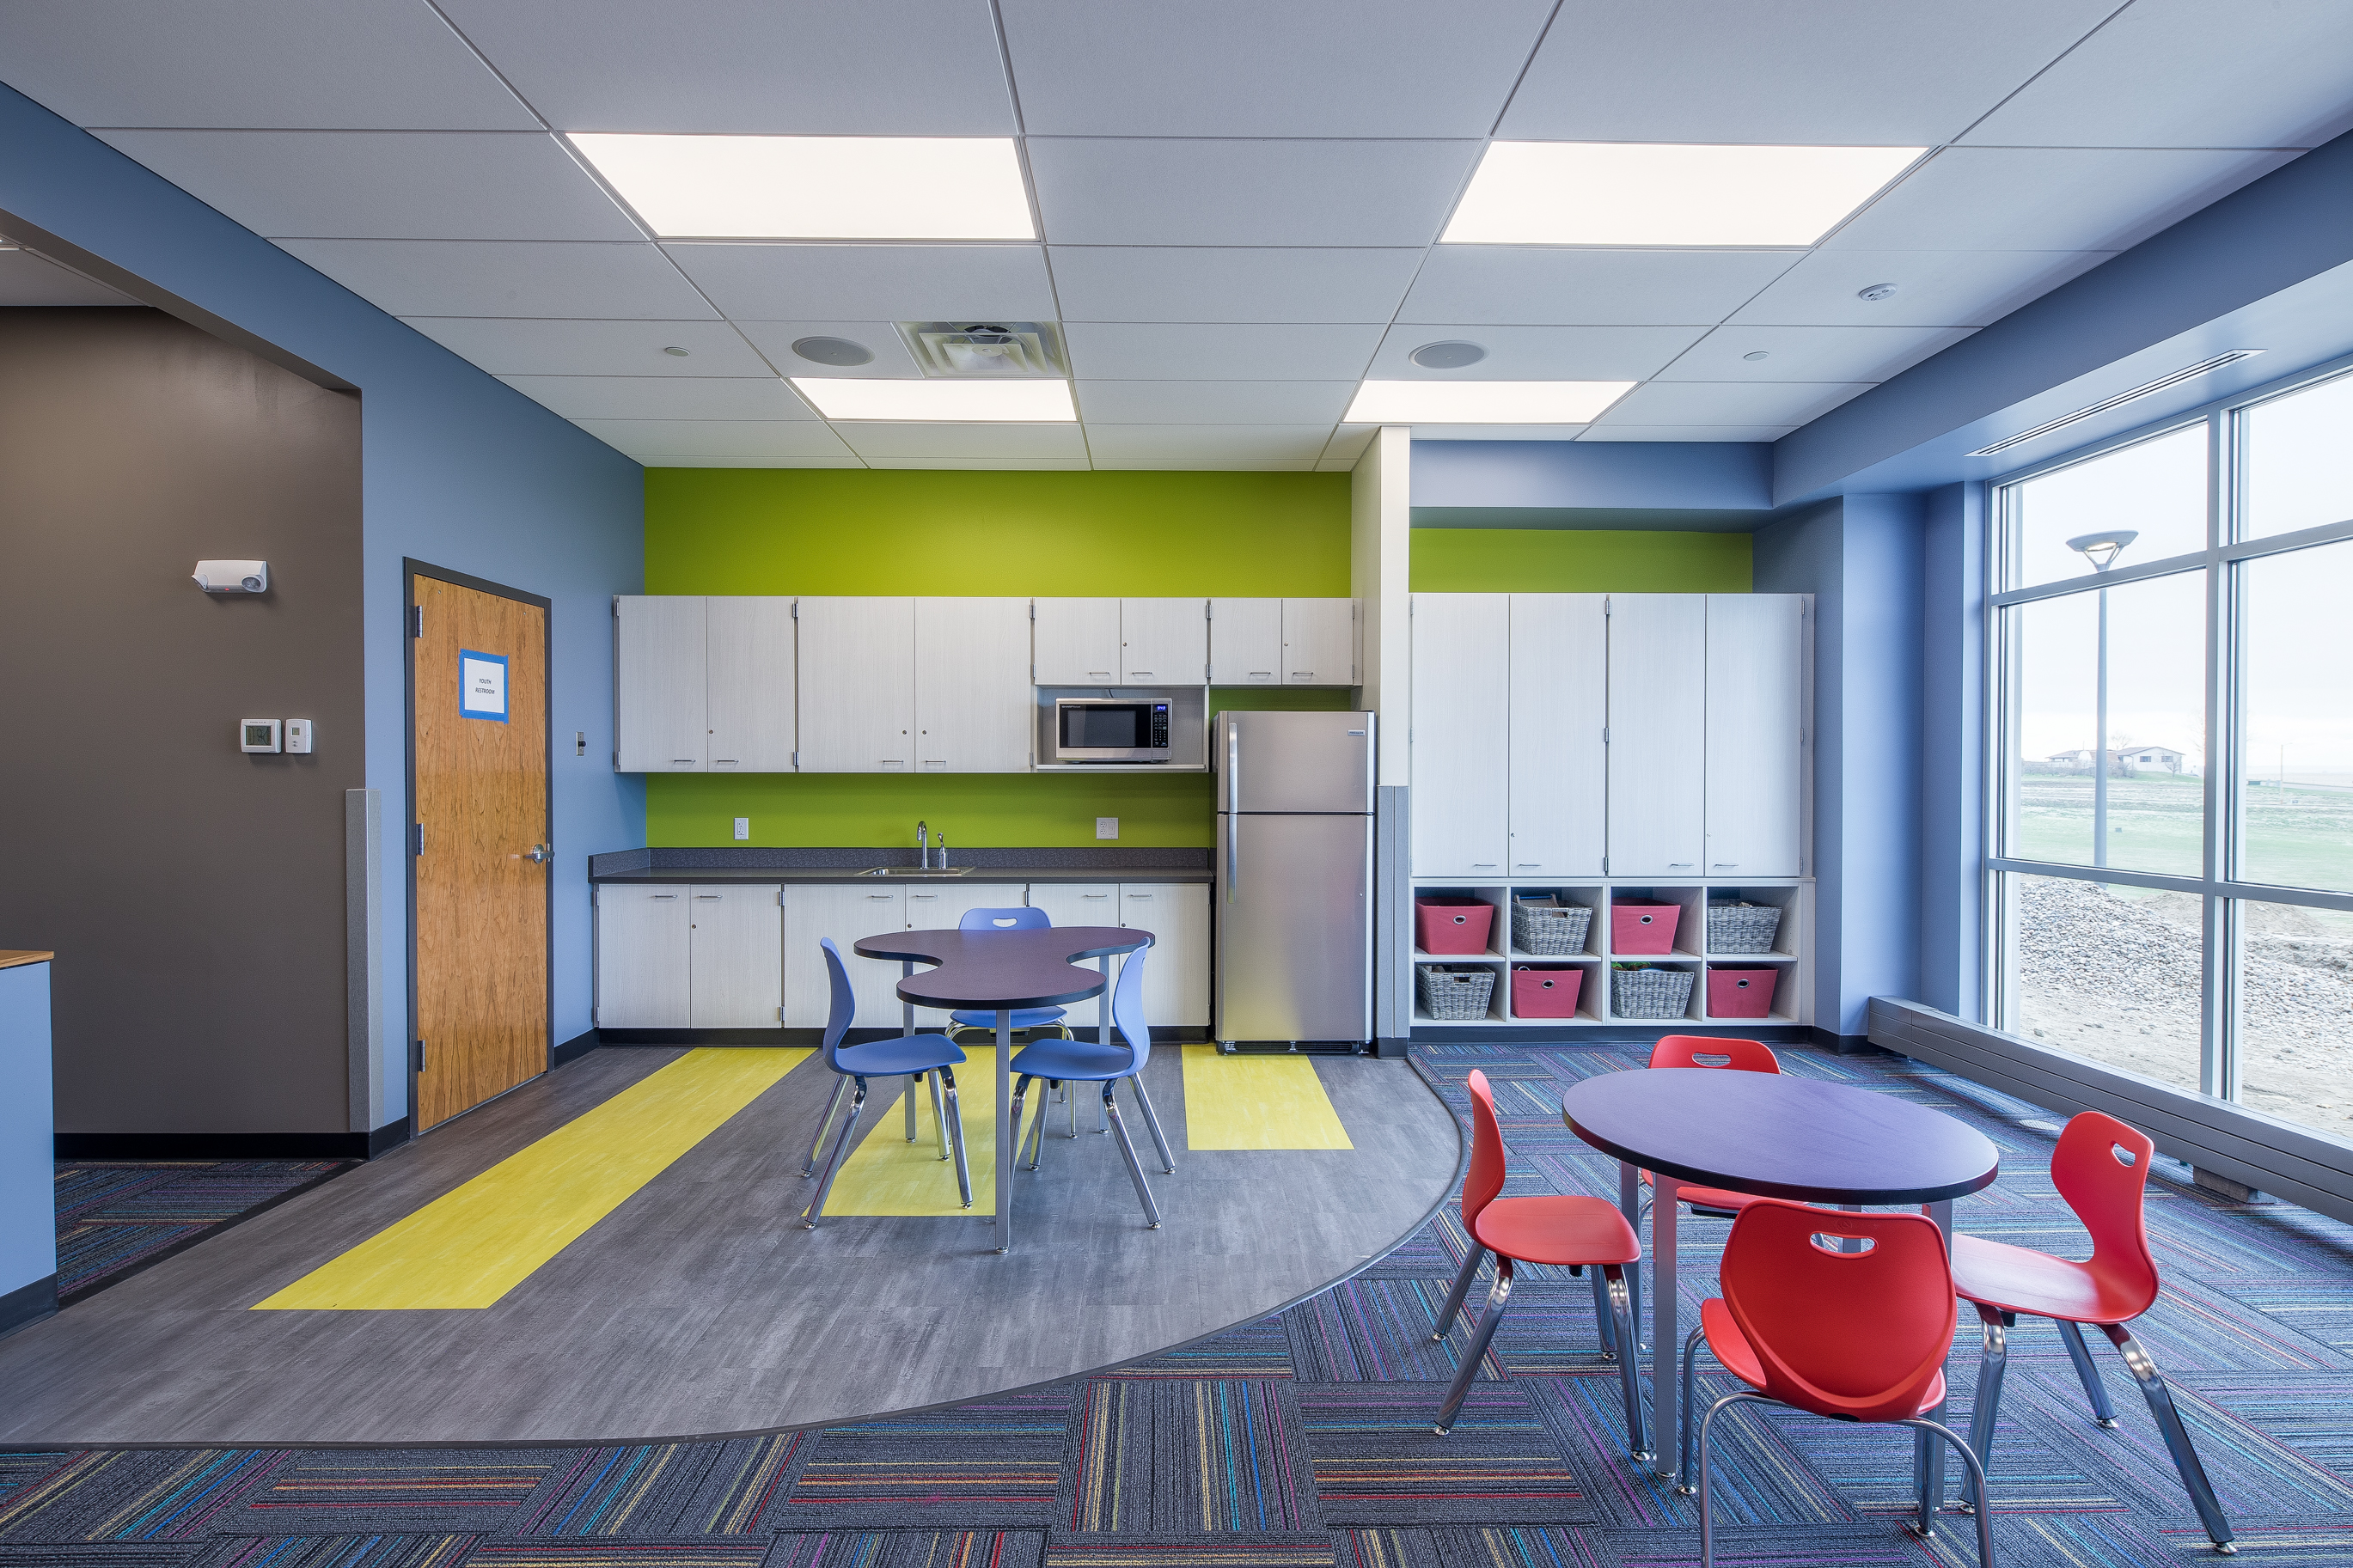 Energy Wellness Center kids area